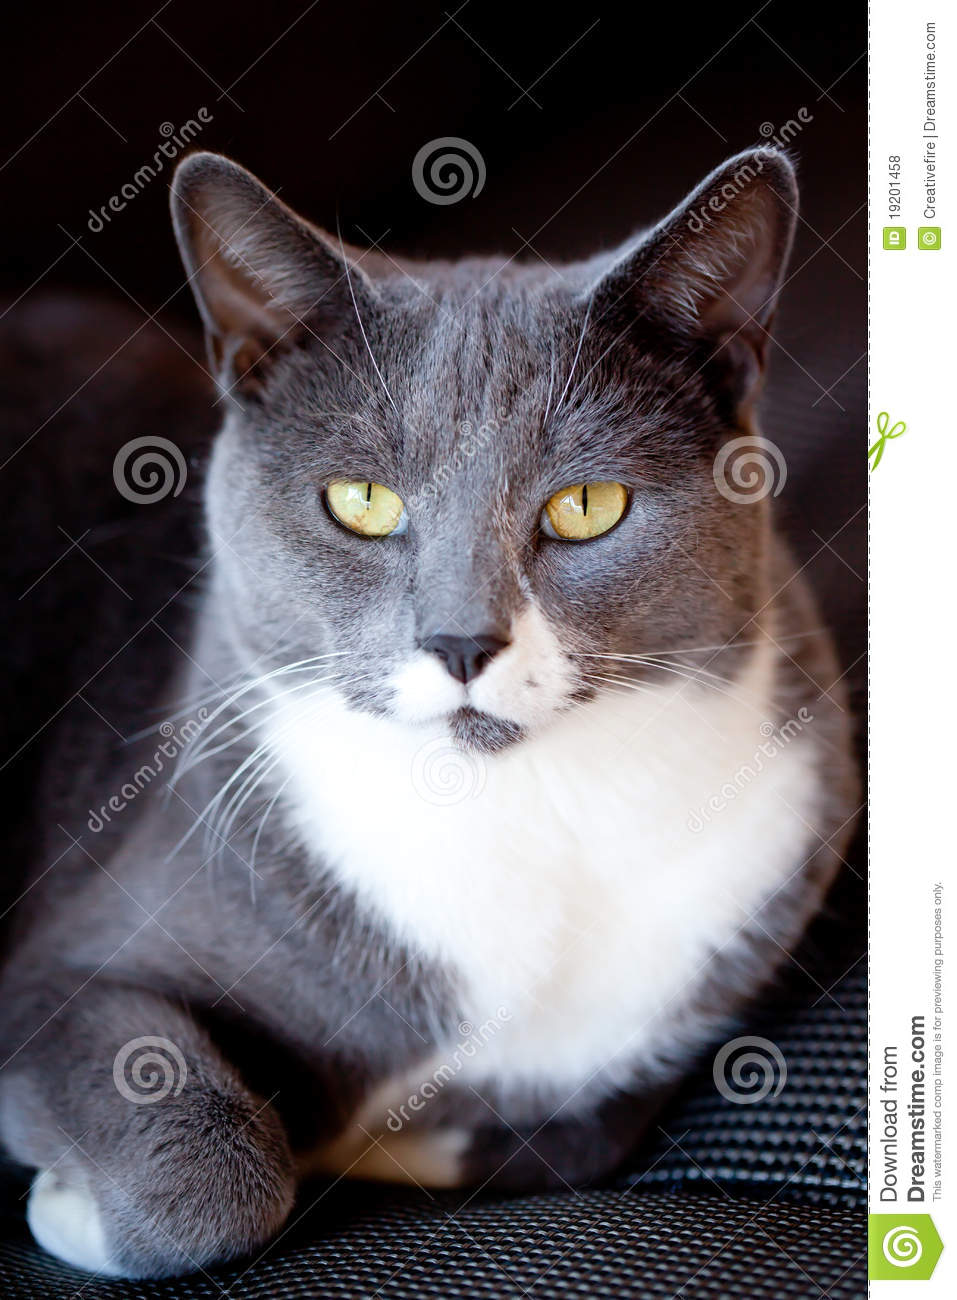 grey and white cat portrait royalty free stock photos. Black Bedroom Furniture Sets. Home Design Ideas